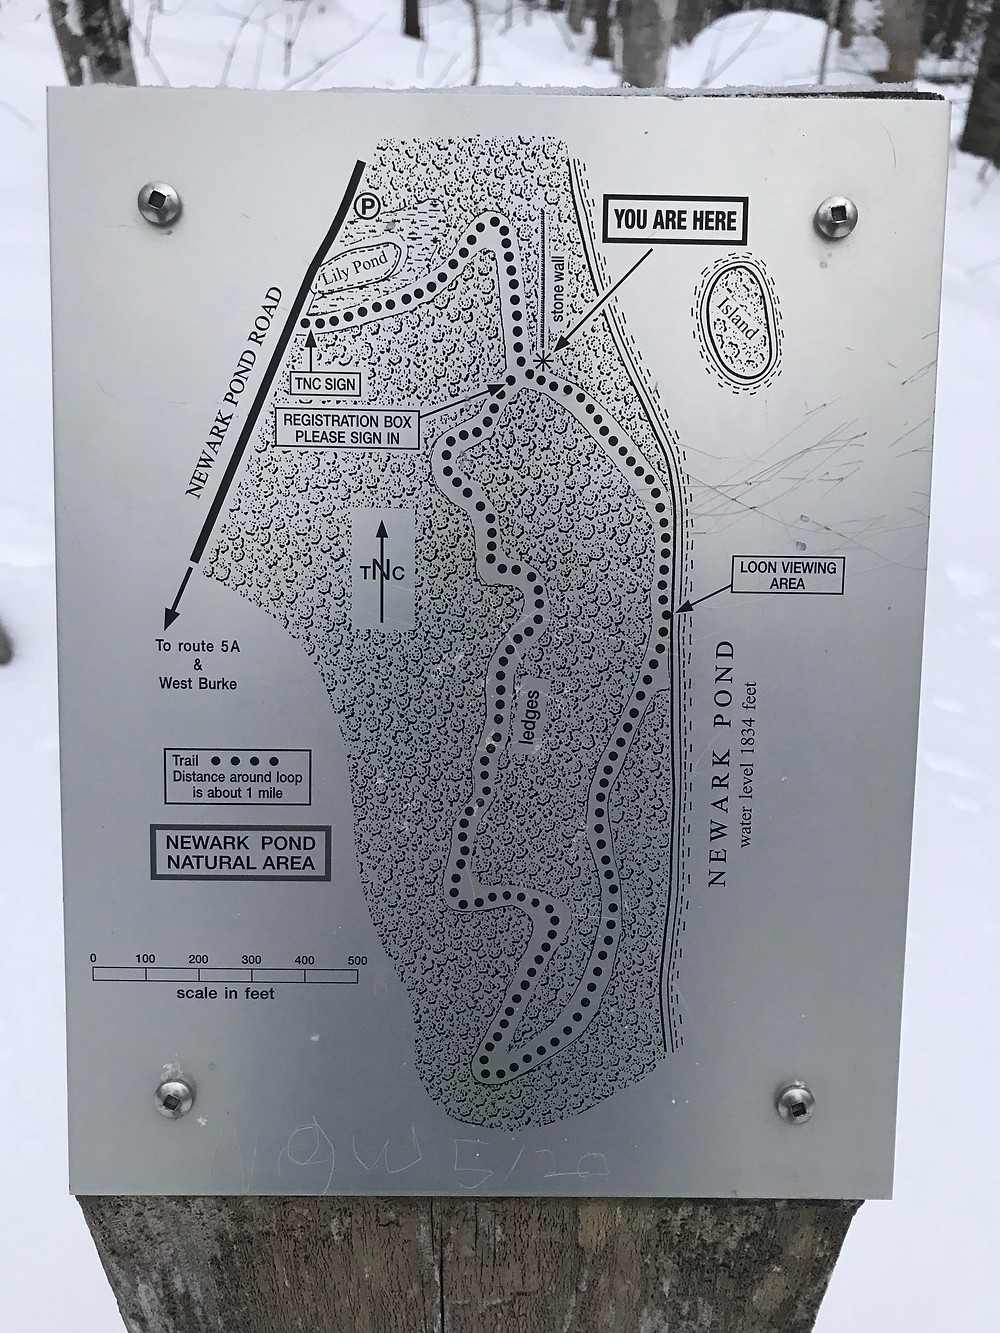 Map of the Newark Pond Trail